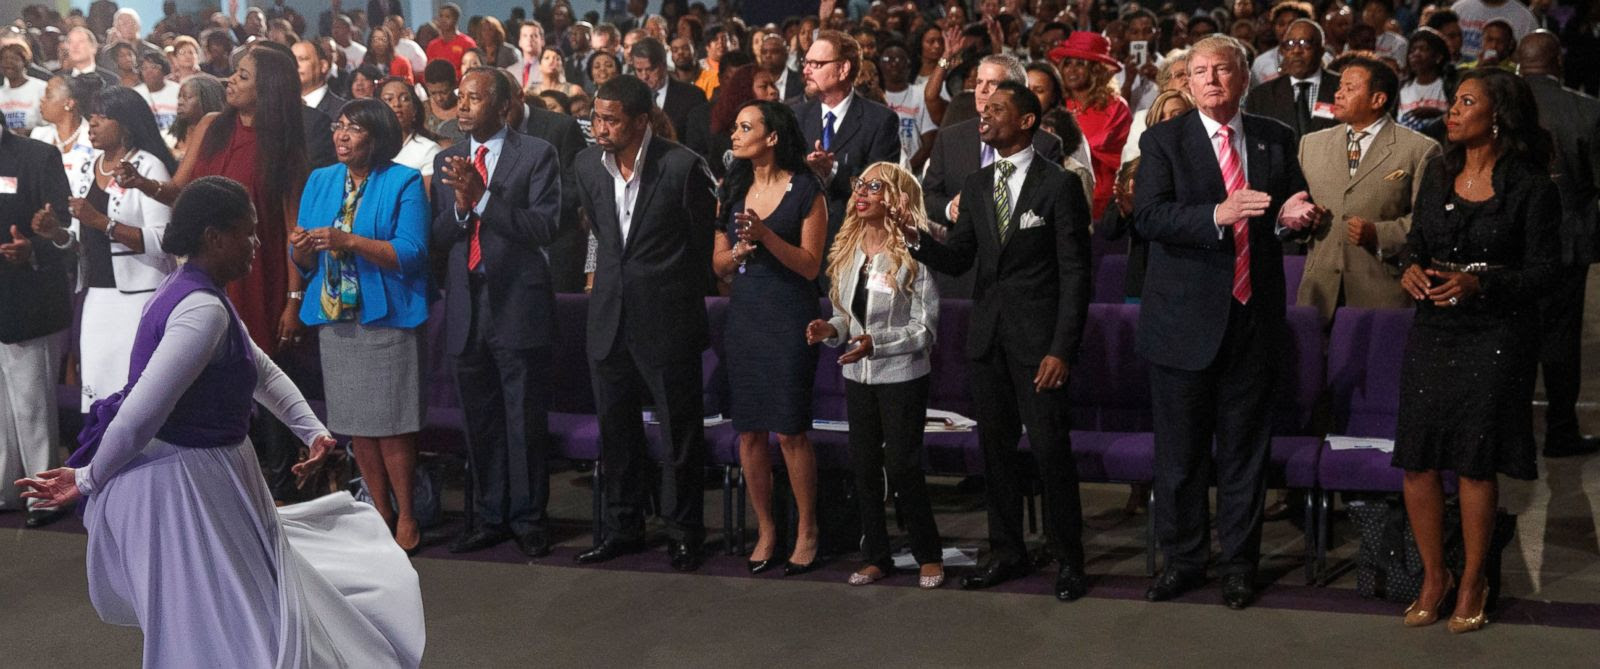 Image result for trump with the blacks in church conversation